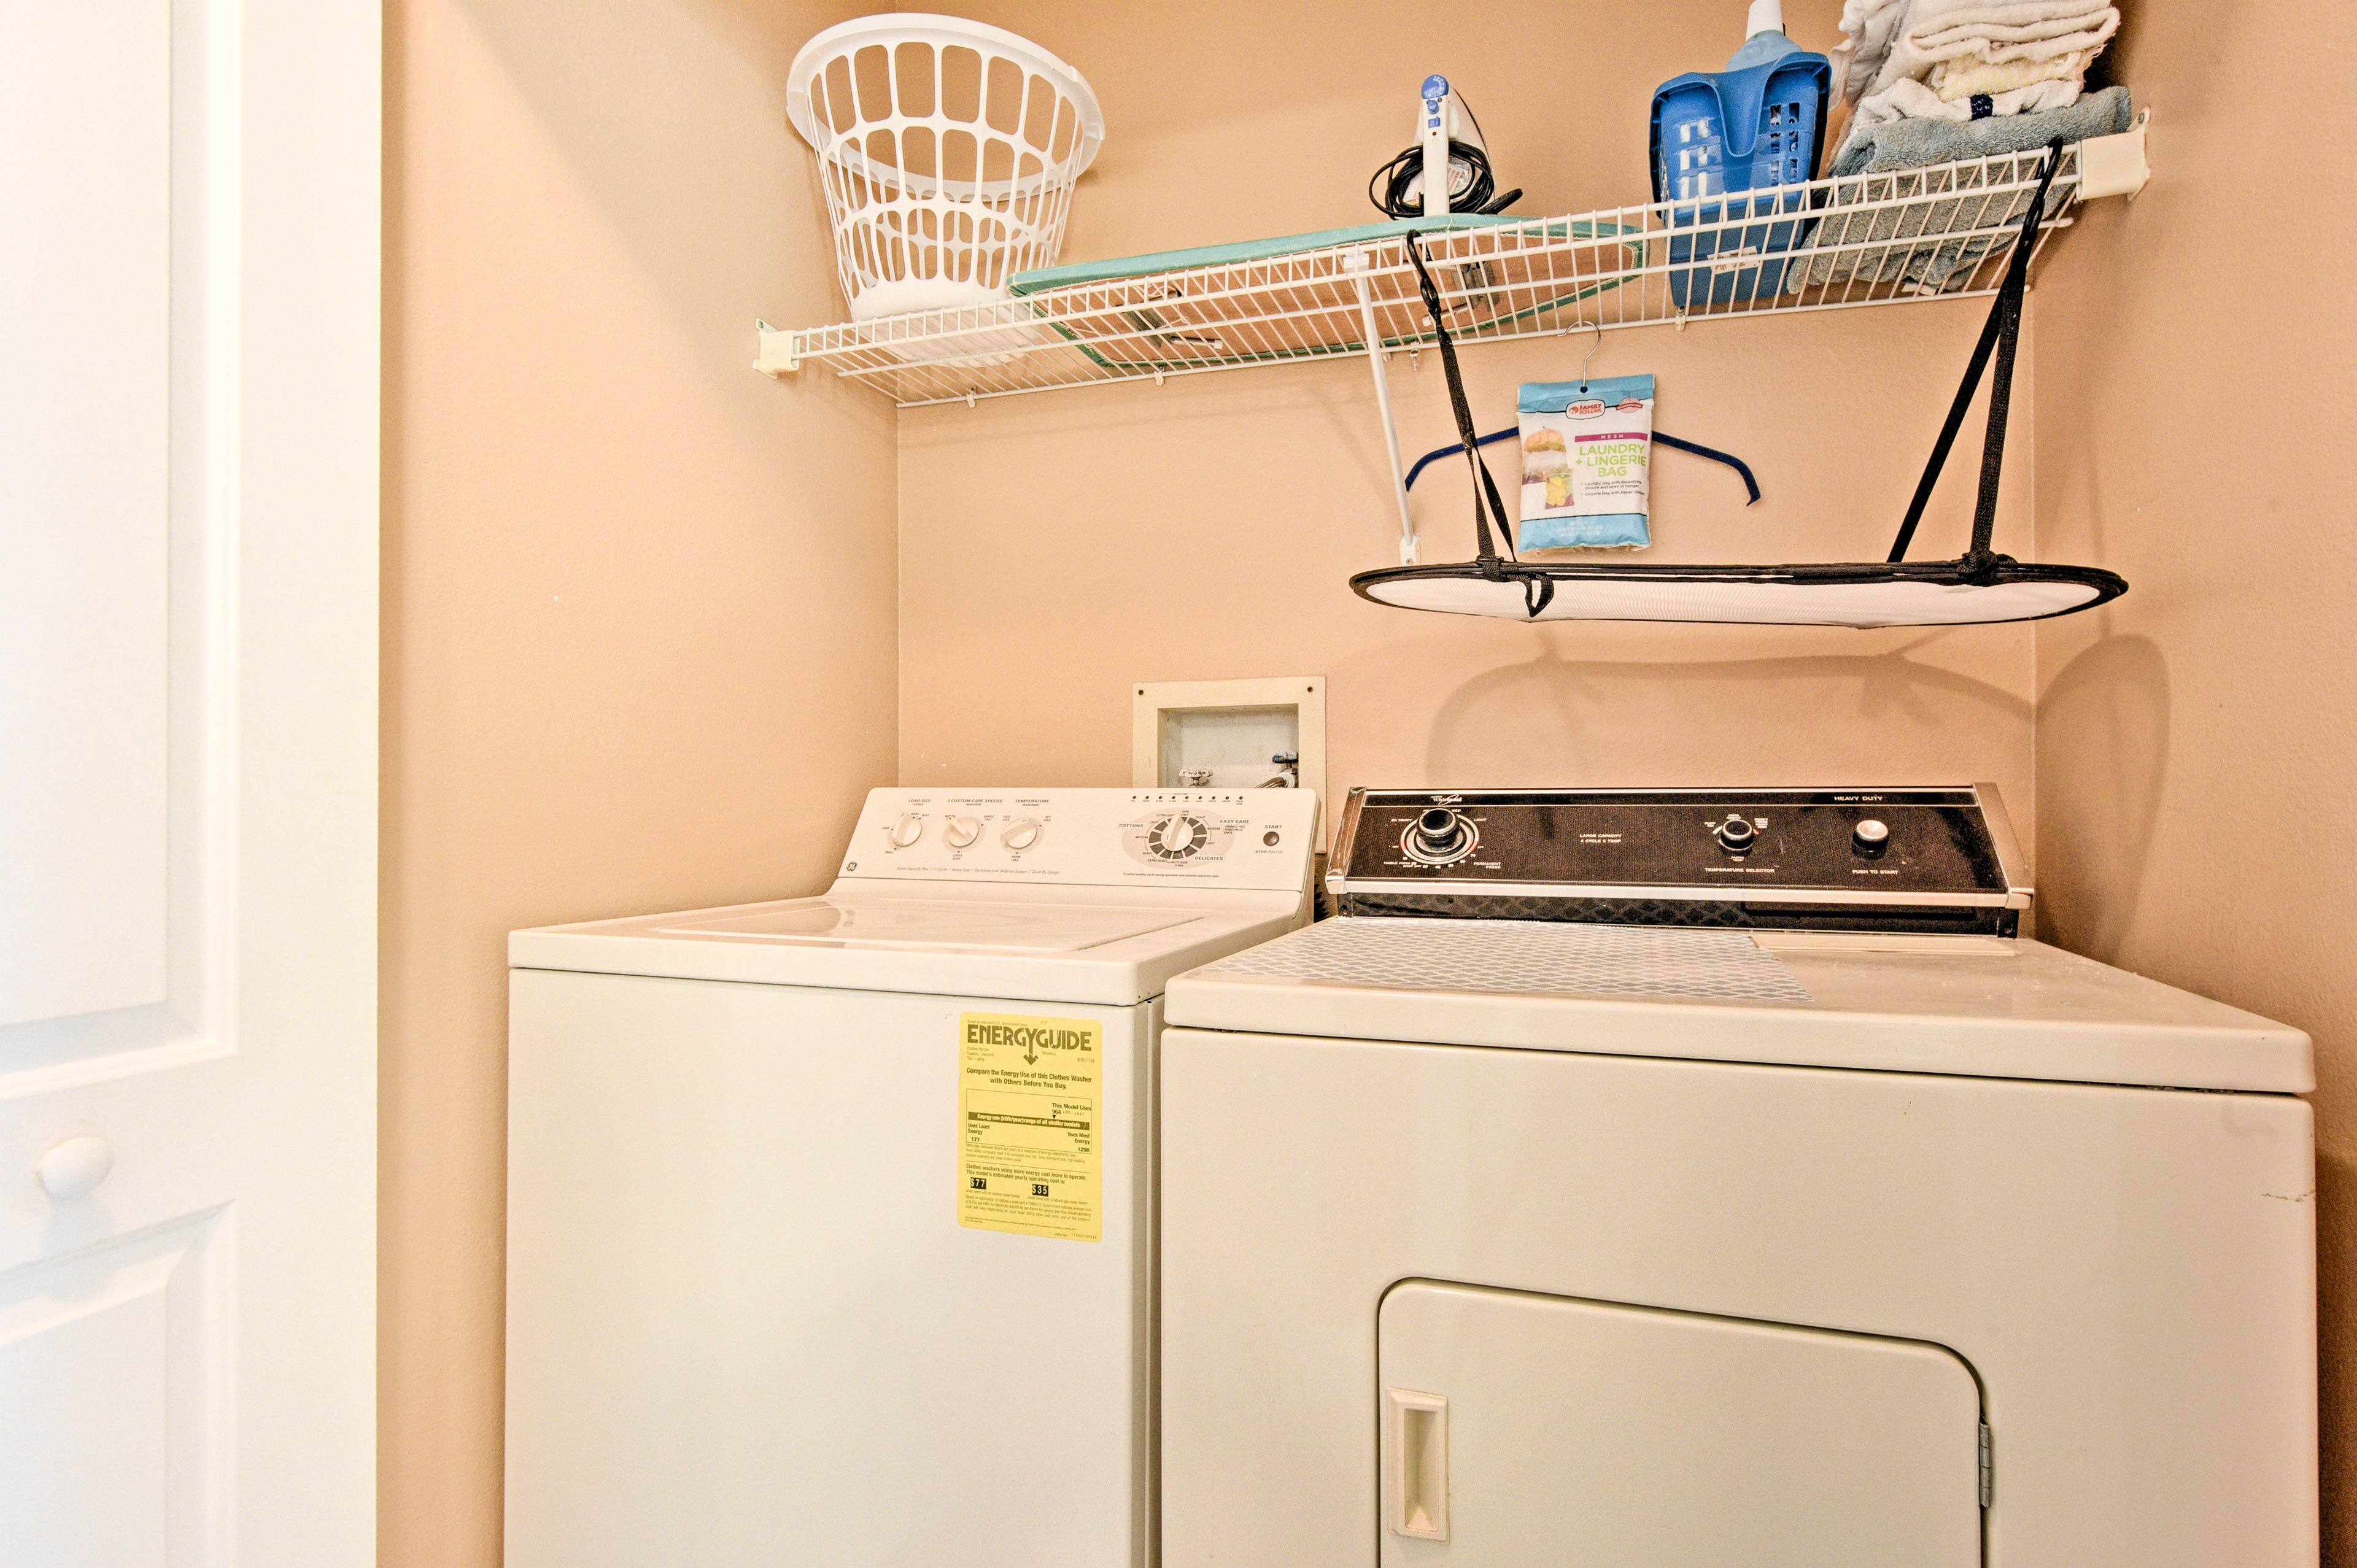 A washer and dryer are conviently hooked up inside the unit.